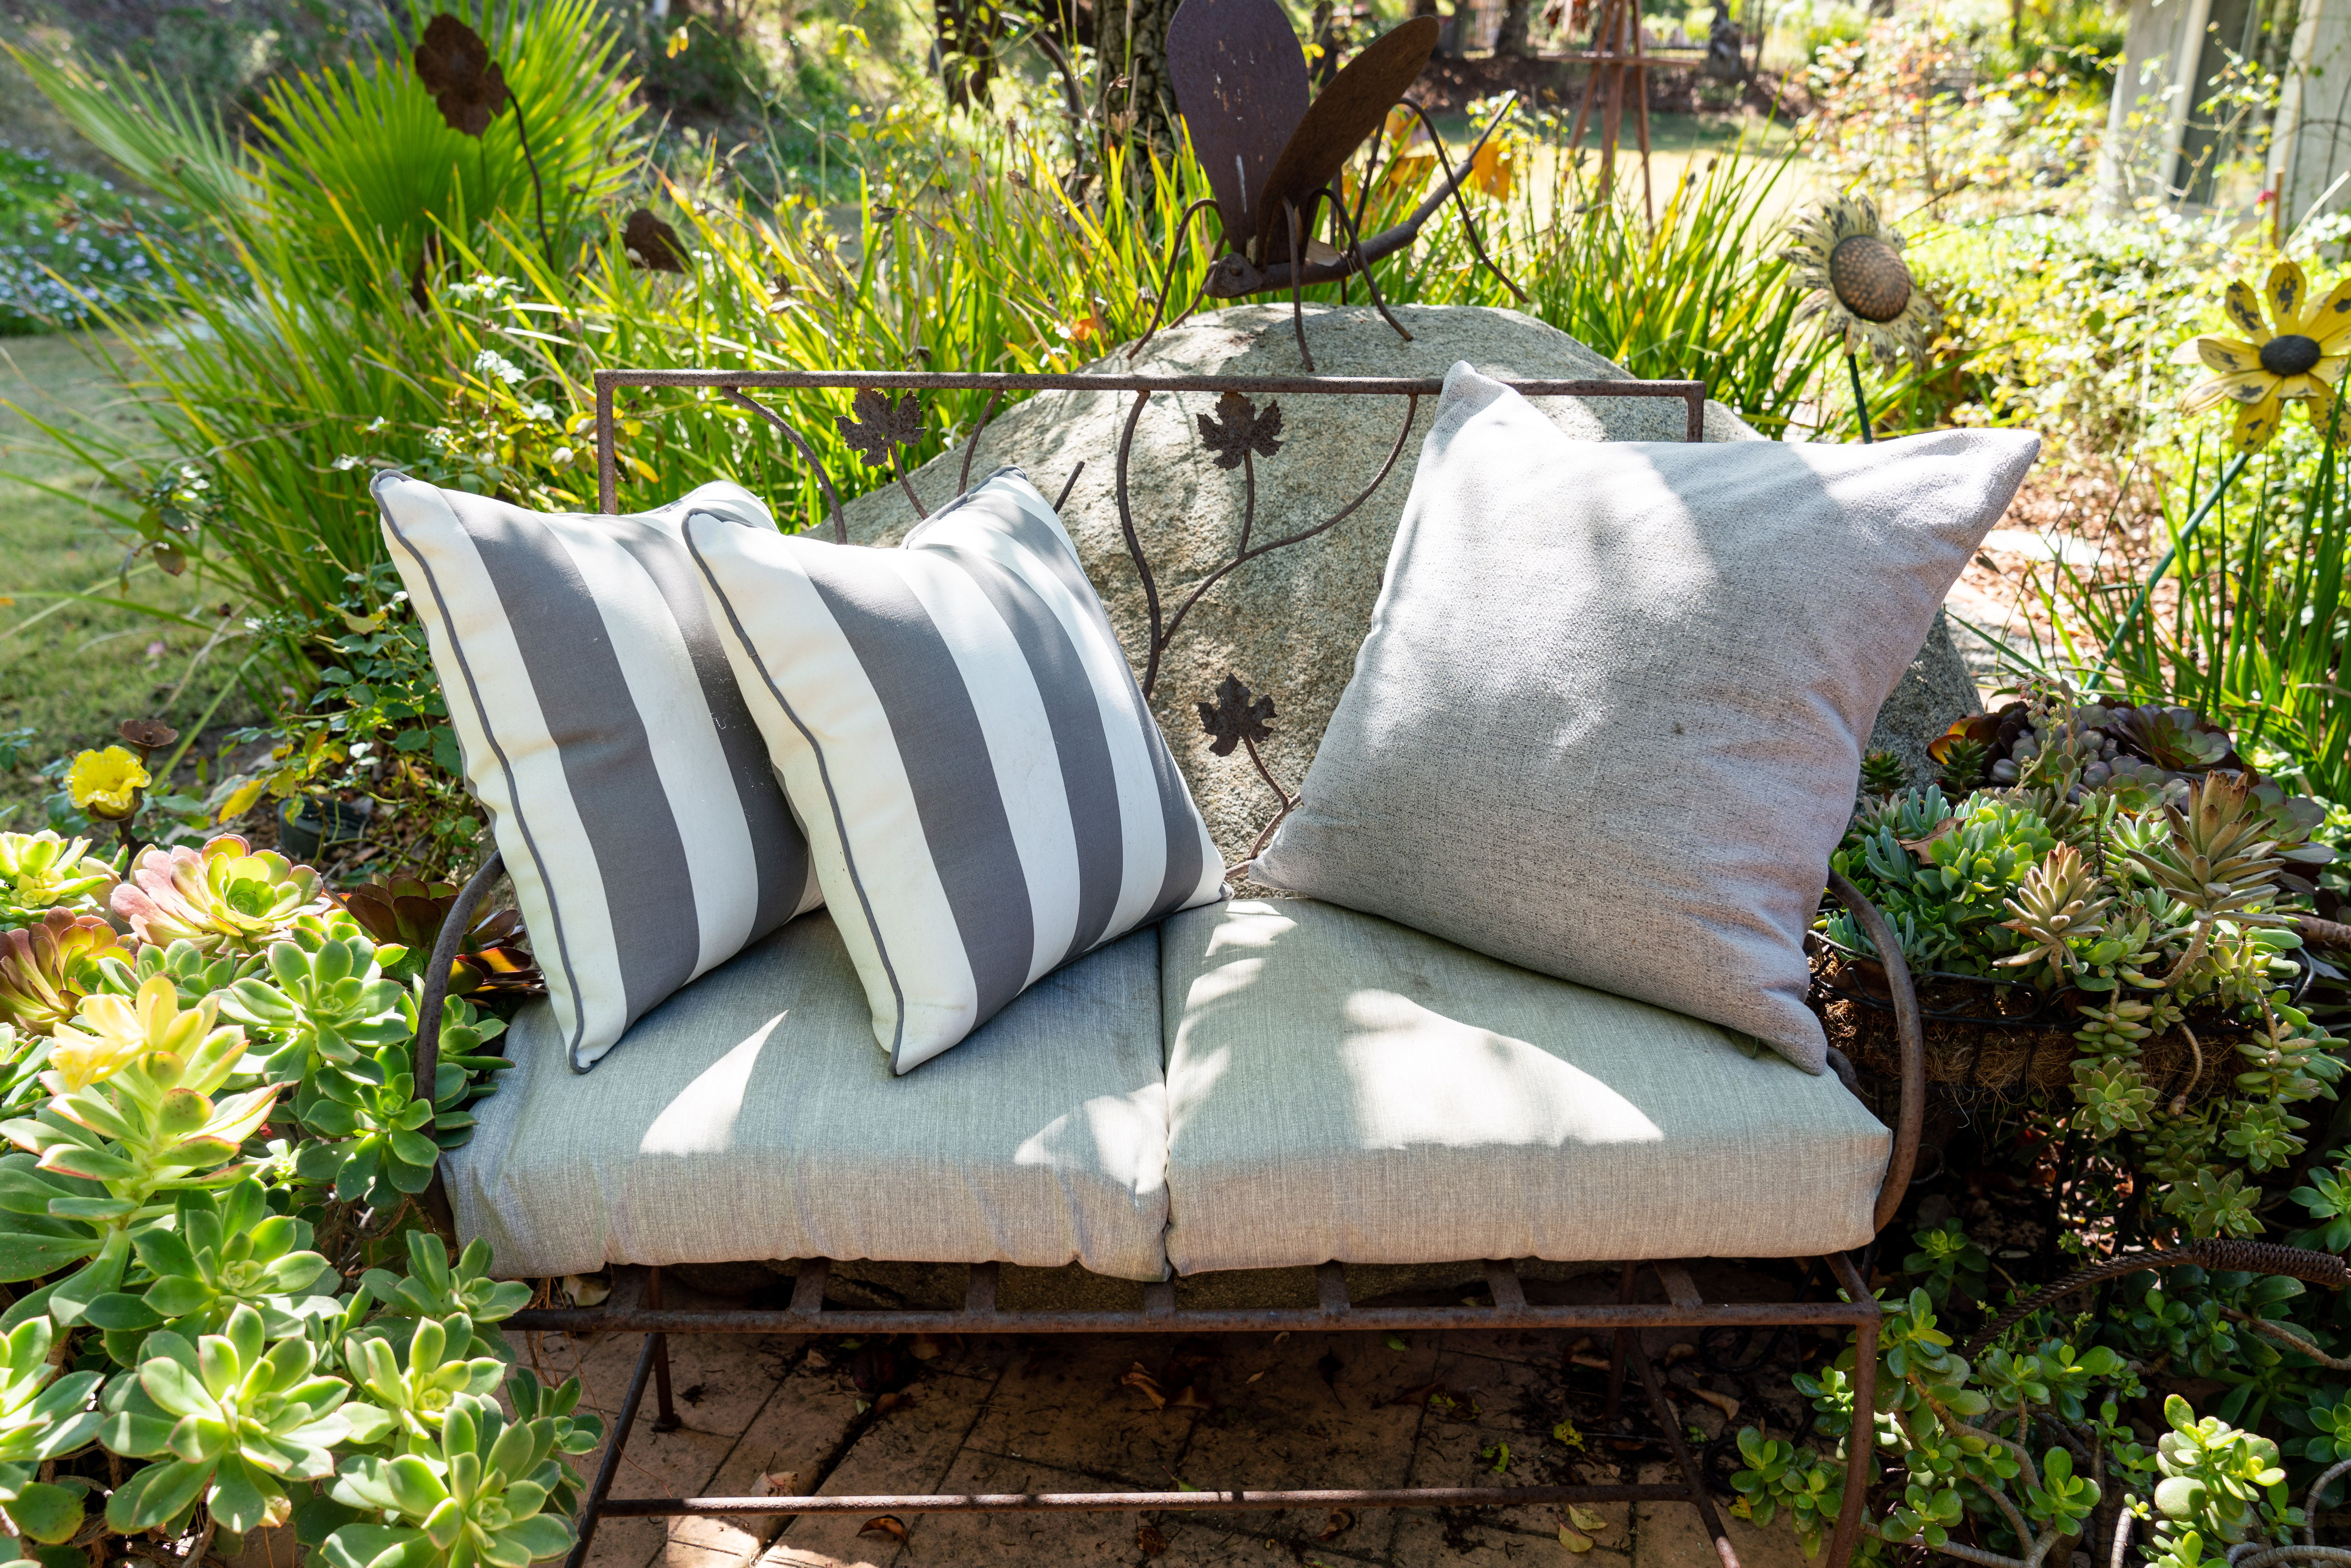 Clean Outdoor Cushions And Fabric Furniture, How To Remove Mold Spots From Outdoor Cushions